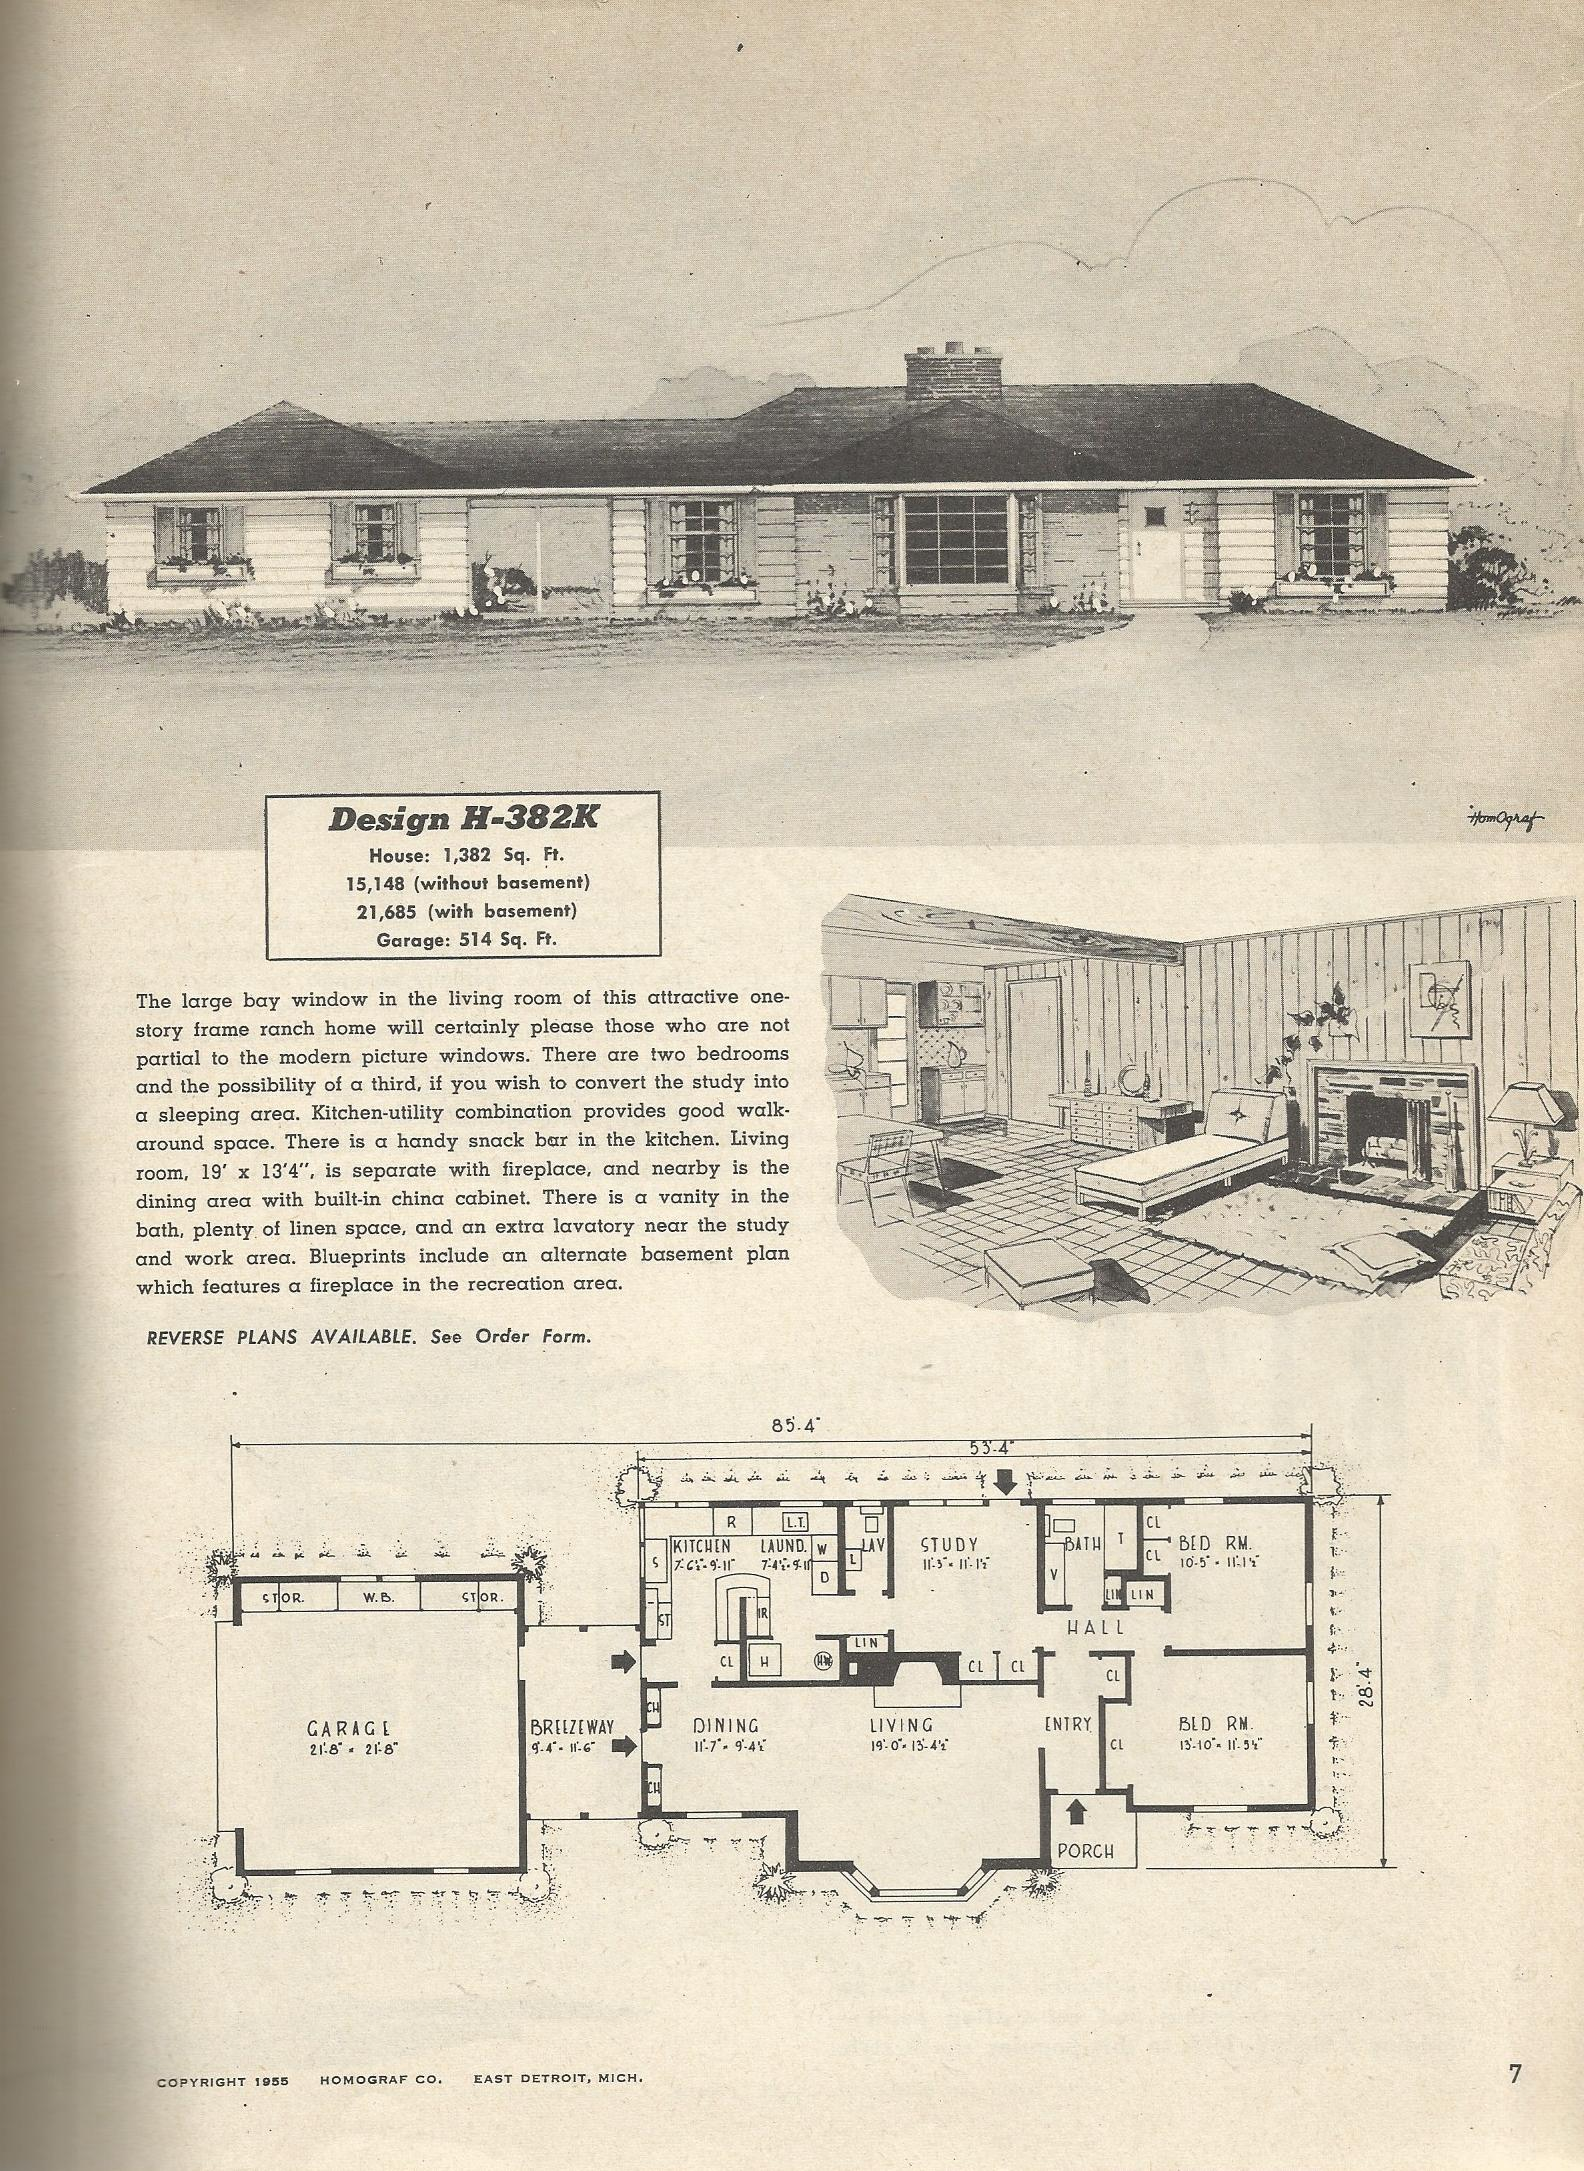 Vintage 1950S Home – Fashion dresses on 1950s ranch style homes, 1950s split level style homes, 1950s colonial style homes,